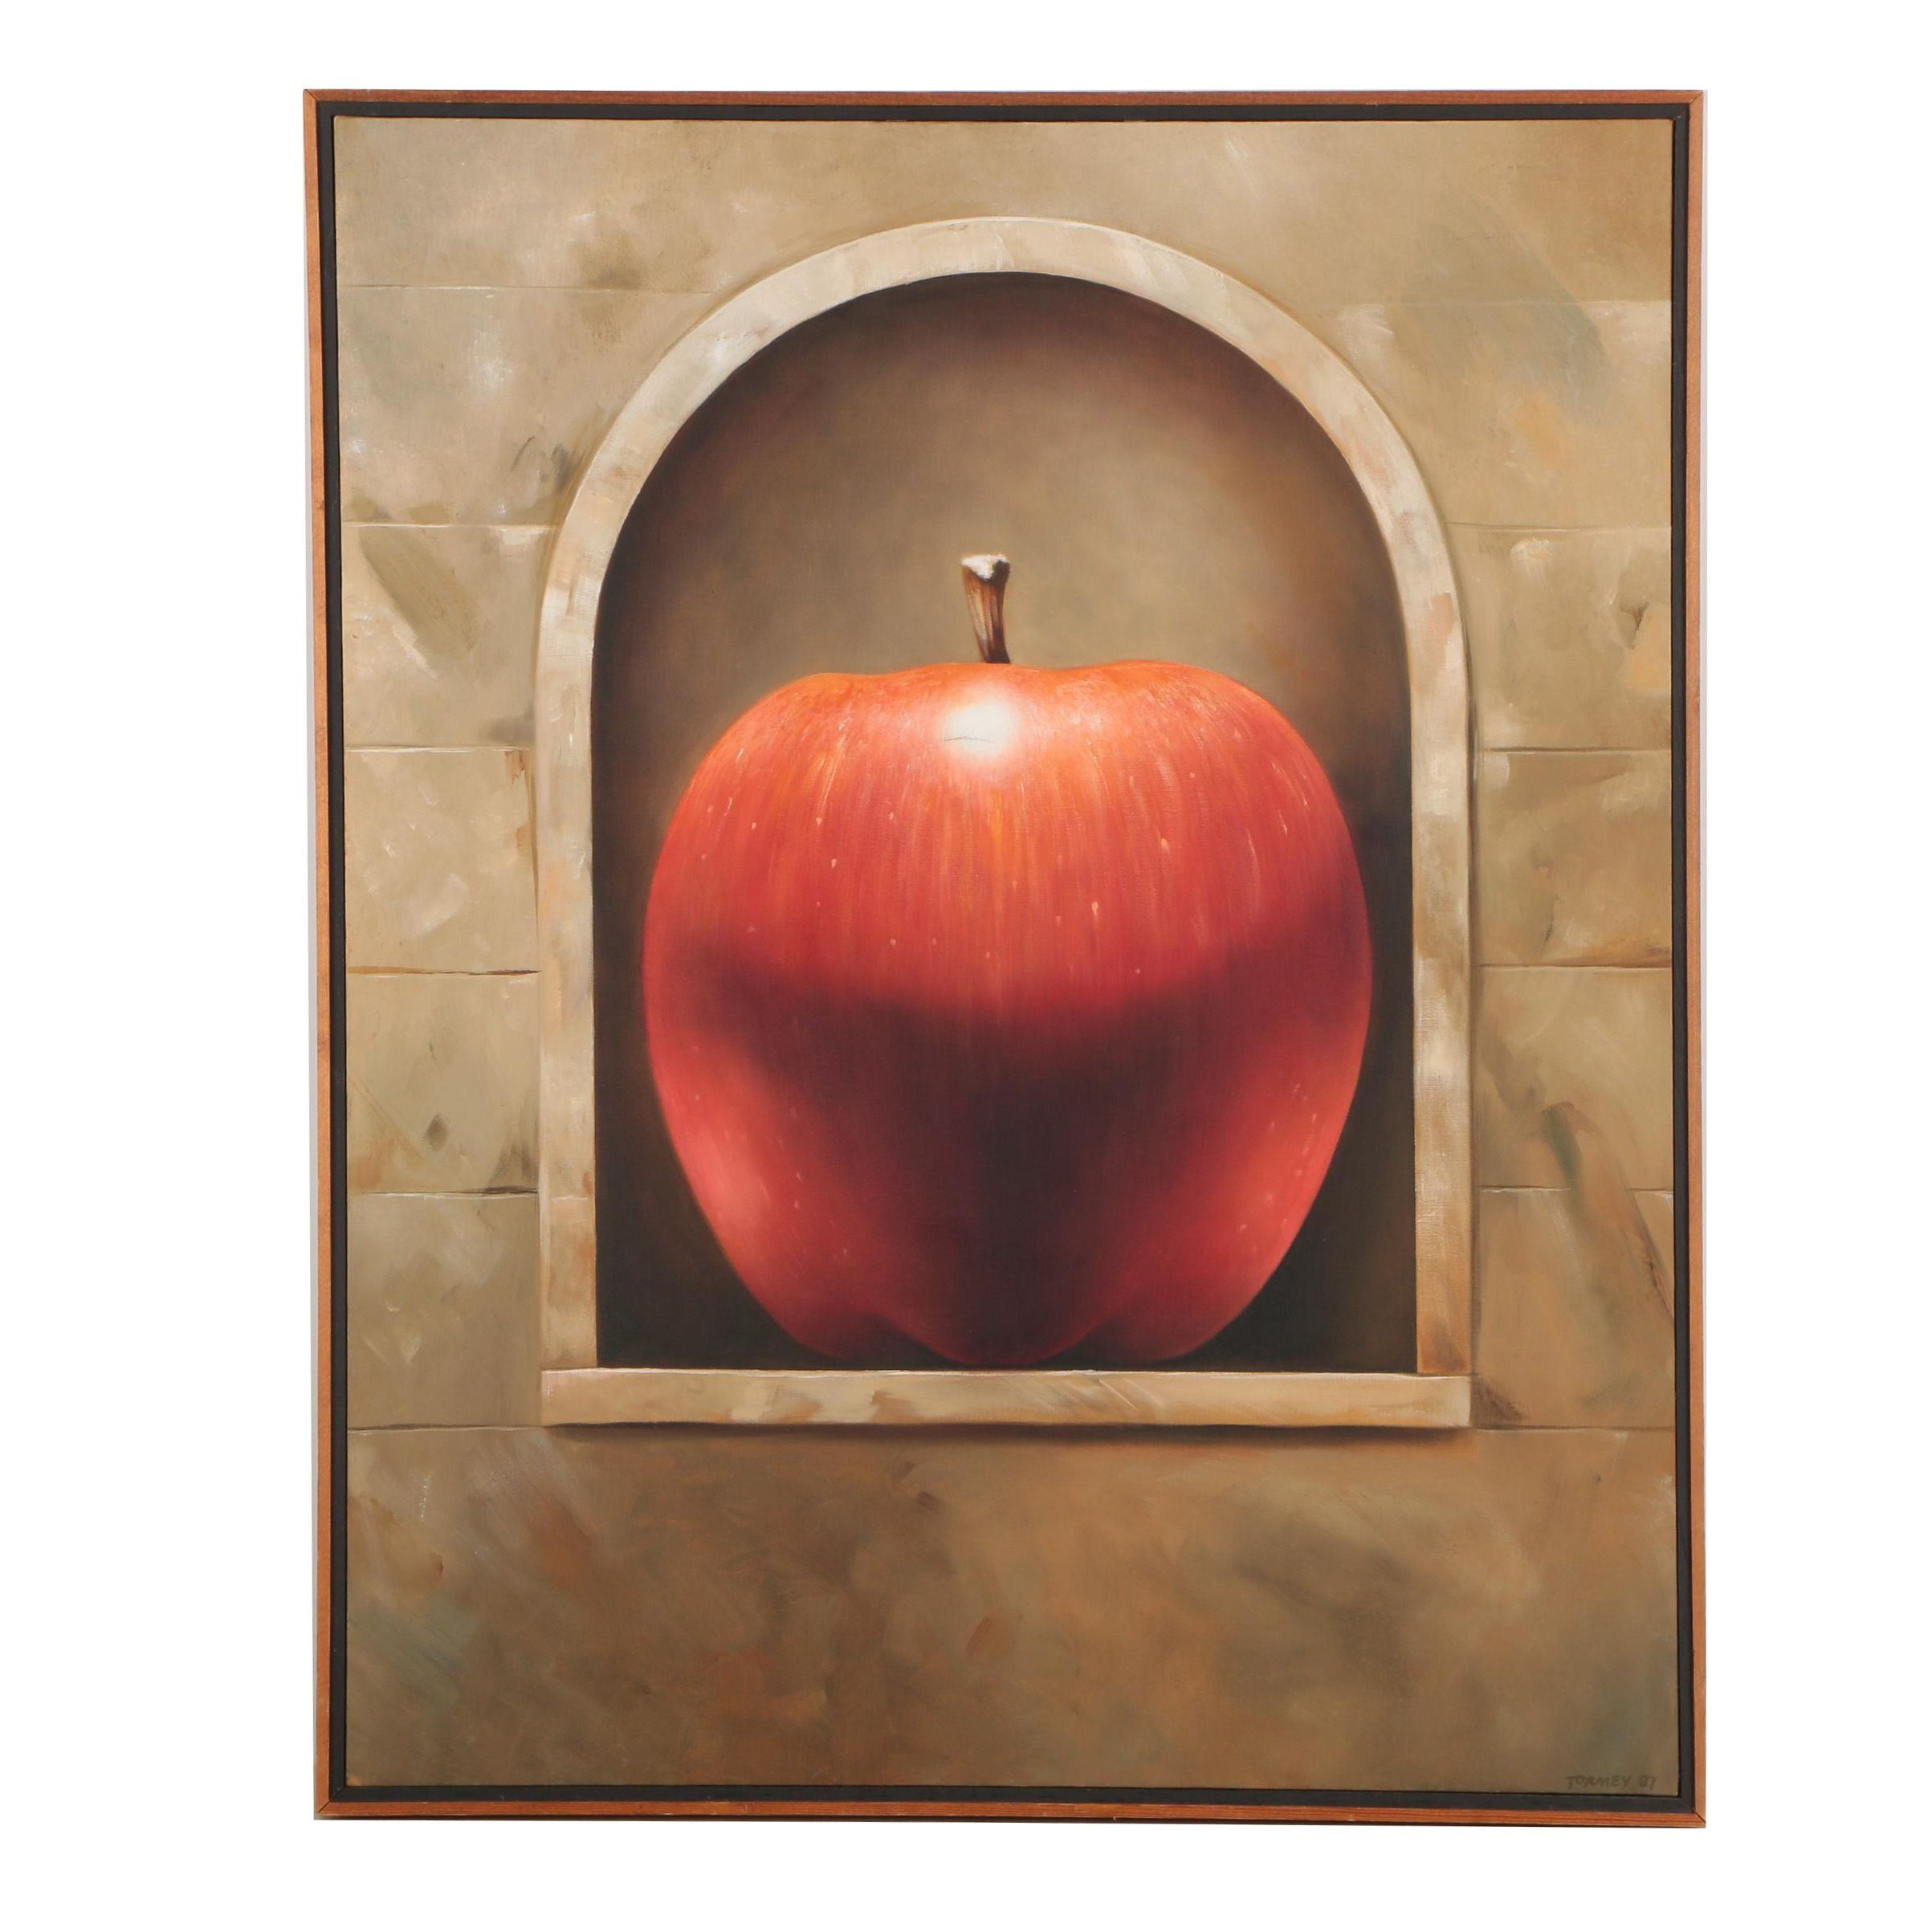 James Tormey 1987 Oil Painting of Apple